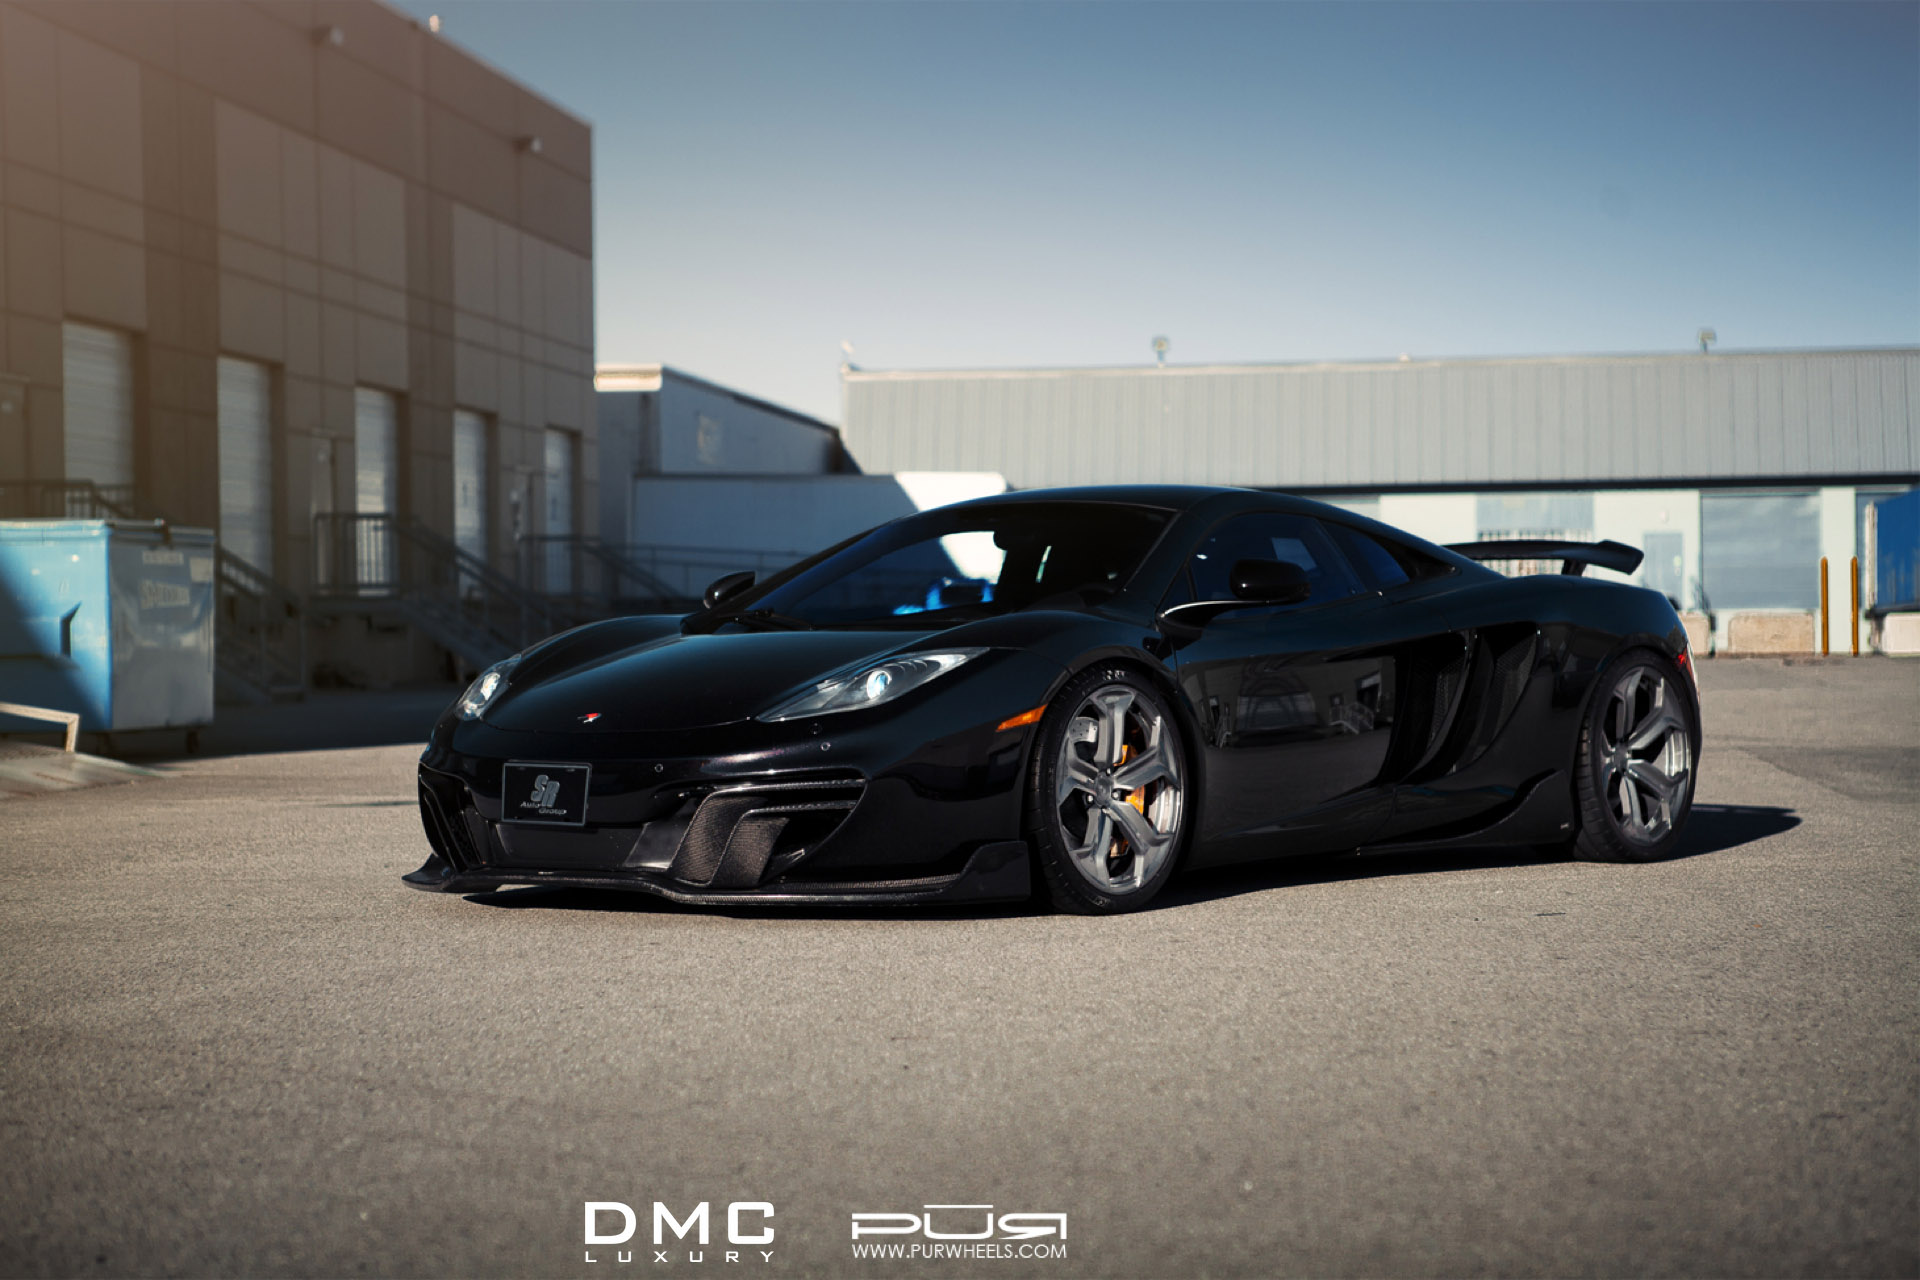 Showcasing The Mclaren Mp4 12c By Dmc Luxury And Pur Wheels